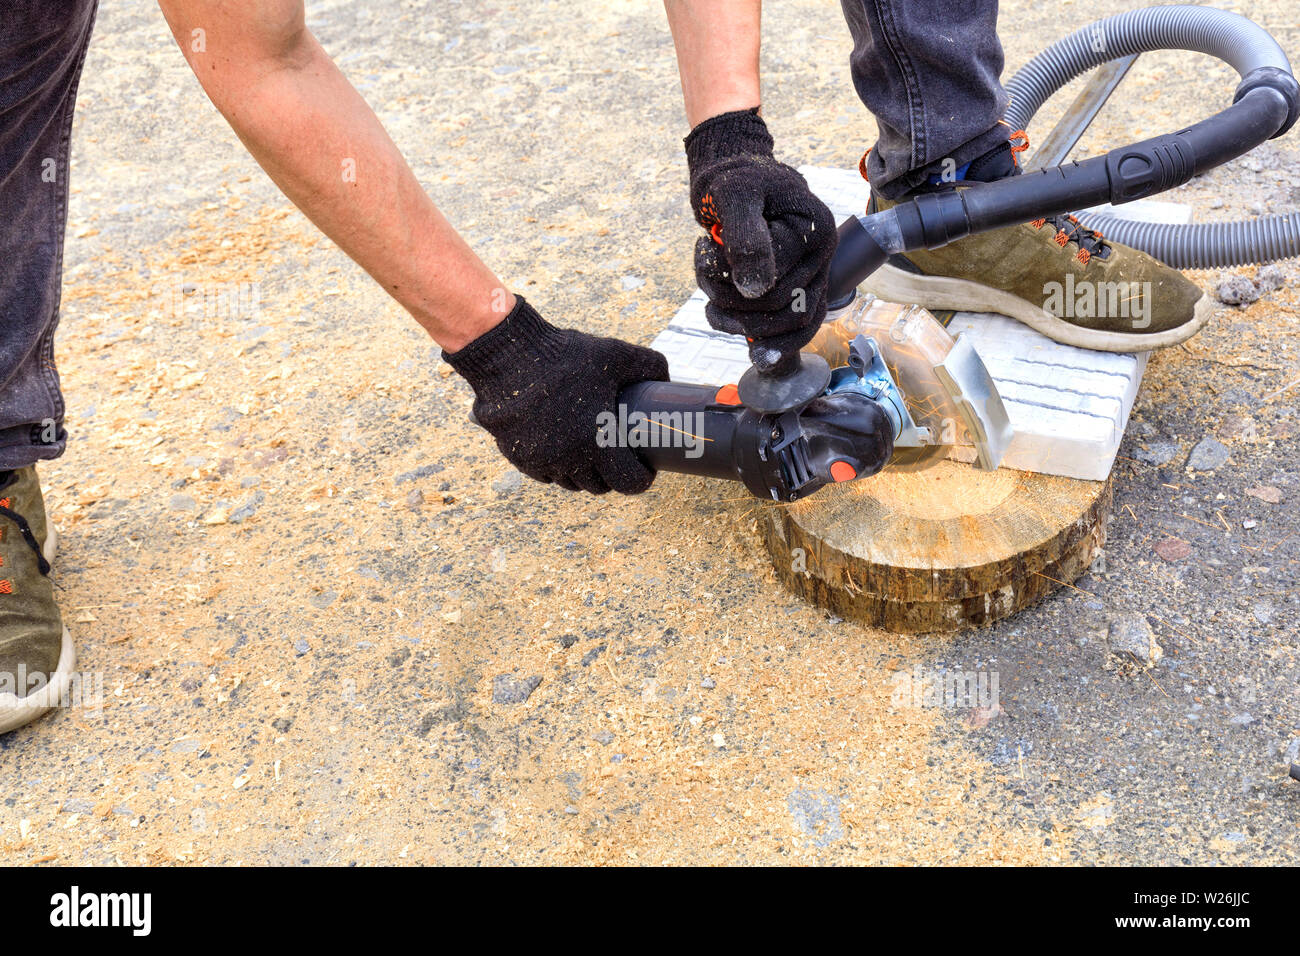 The worker uses a diamond cutting disc and an angle grinder to cut the paving bar and metal plate. - Stock Image